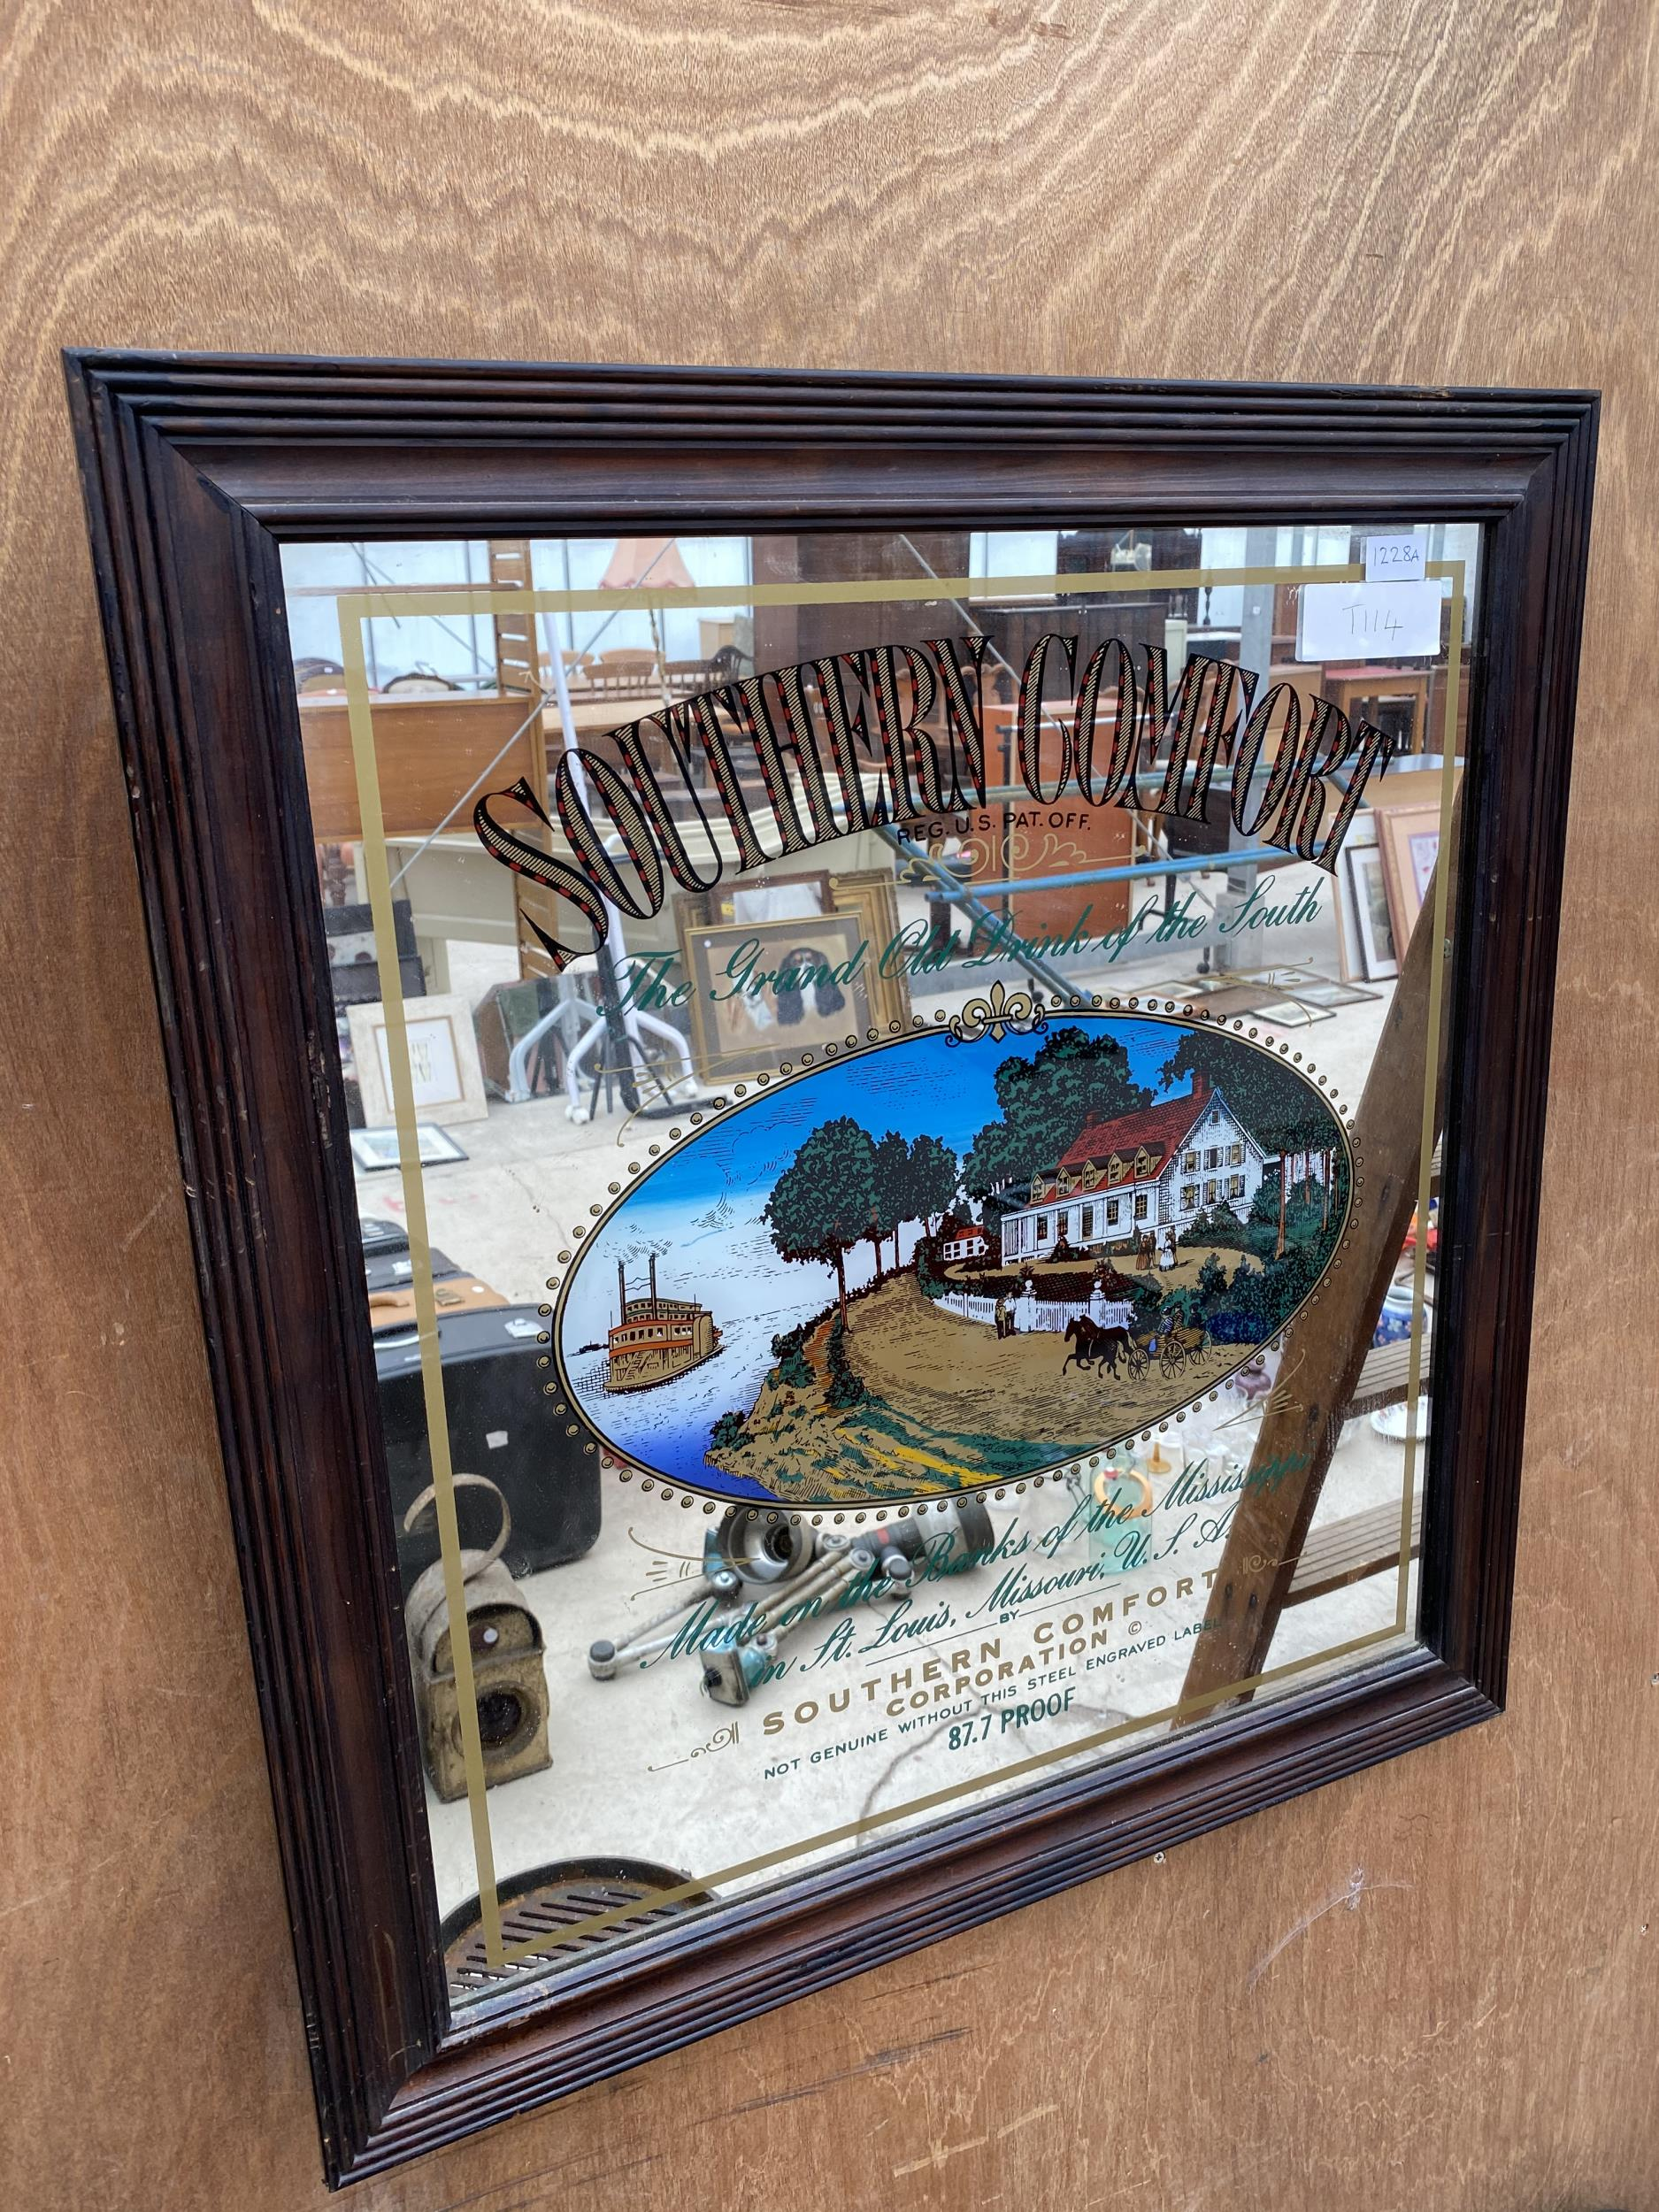 A WOODEN FRAMED 'SOUTHERN COMFORT' ADVERTISING PUB MIRROR - Image 3 of 3